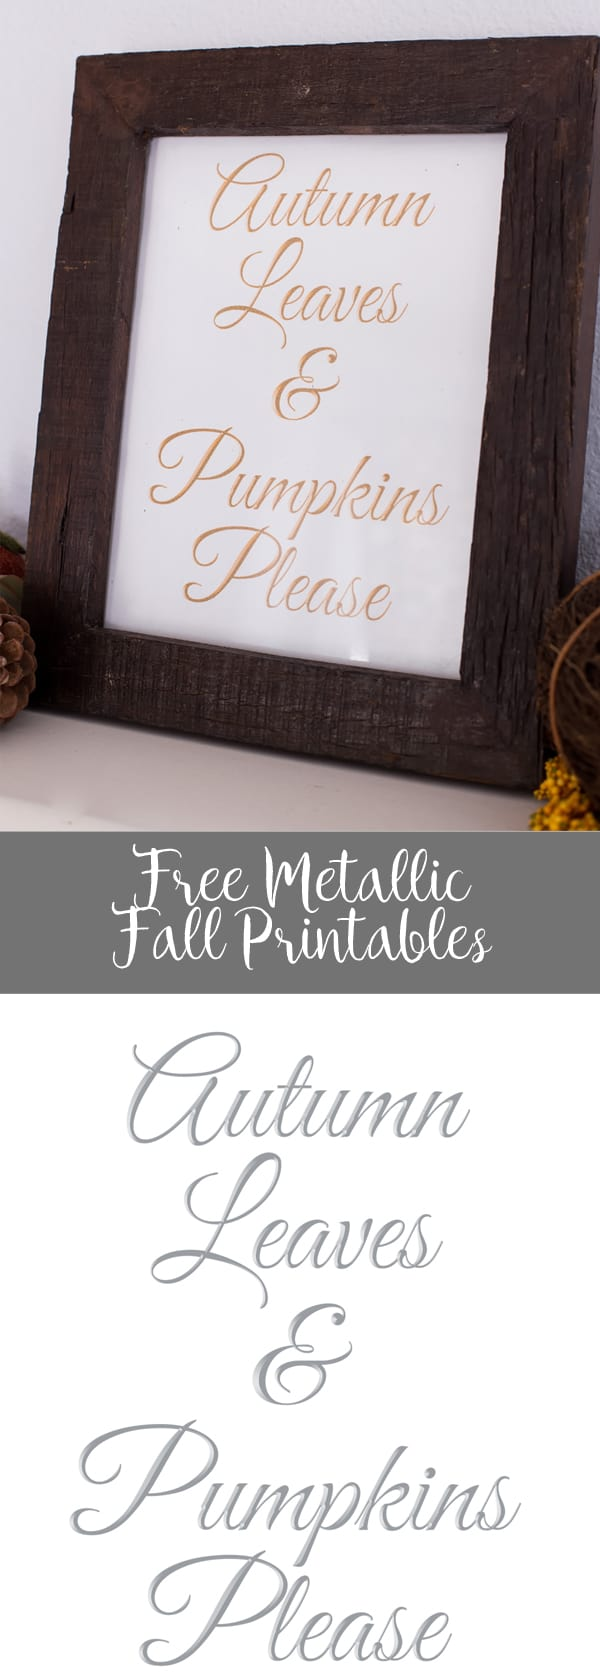 Free Metallic Fall Printables - Autumn Leaves and Pumpkins Please in Silver, Bronze & Gold!